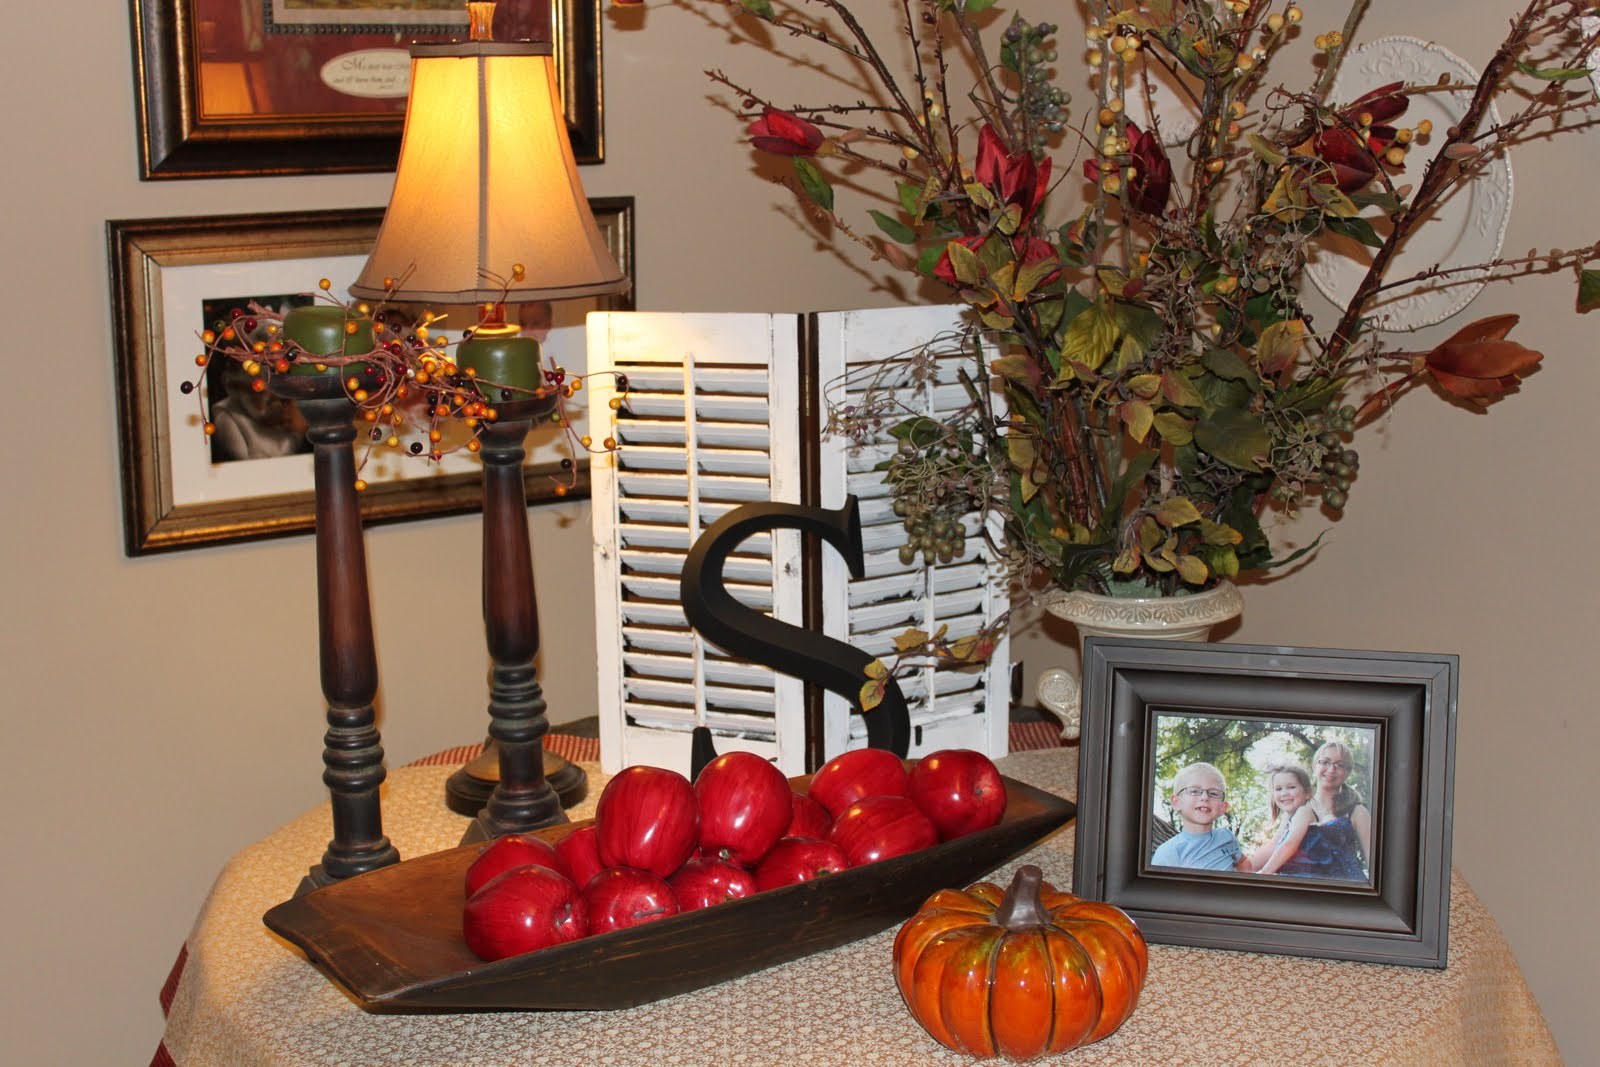 Fall table decor hobby lobby pictures to pin on pinterest